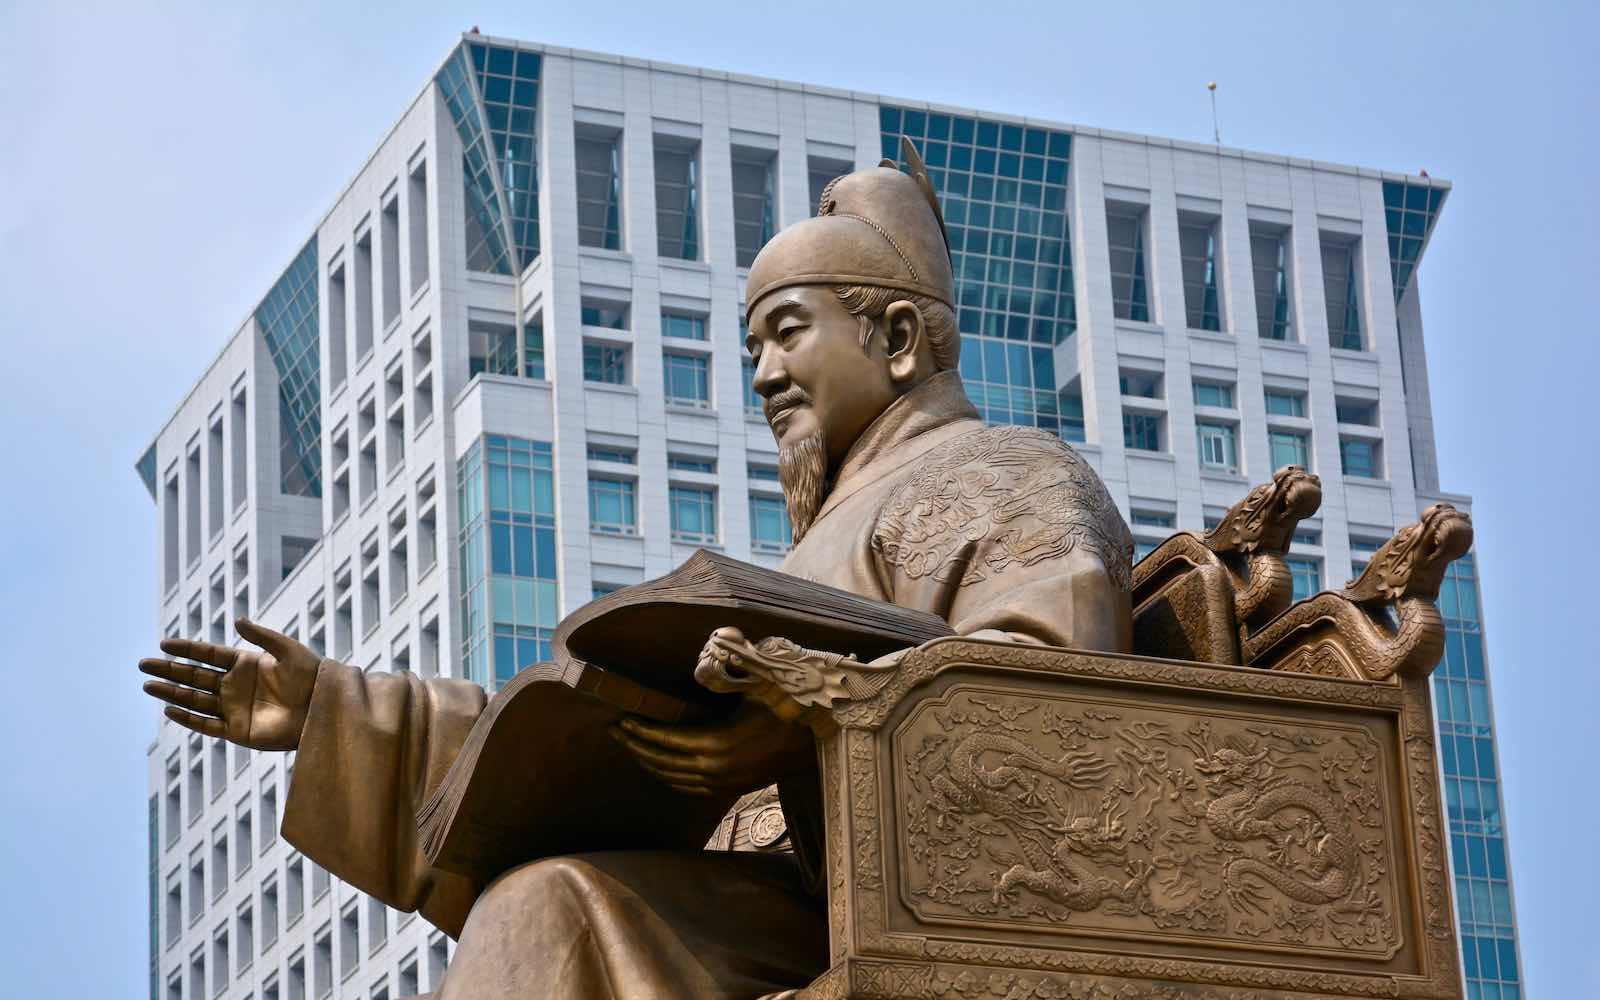 Statue of King Sejong in front of the Republic of Korea's Ministry of Foreign Affairs, Seoul (Getty Images)